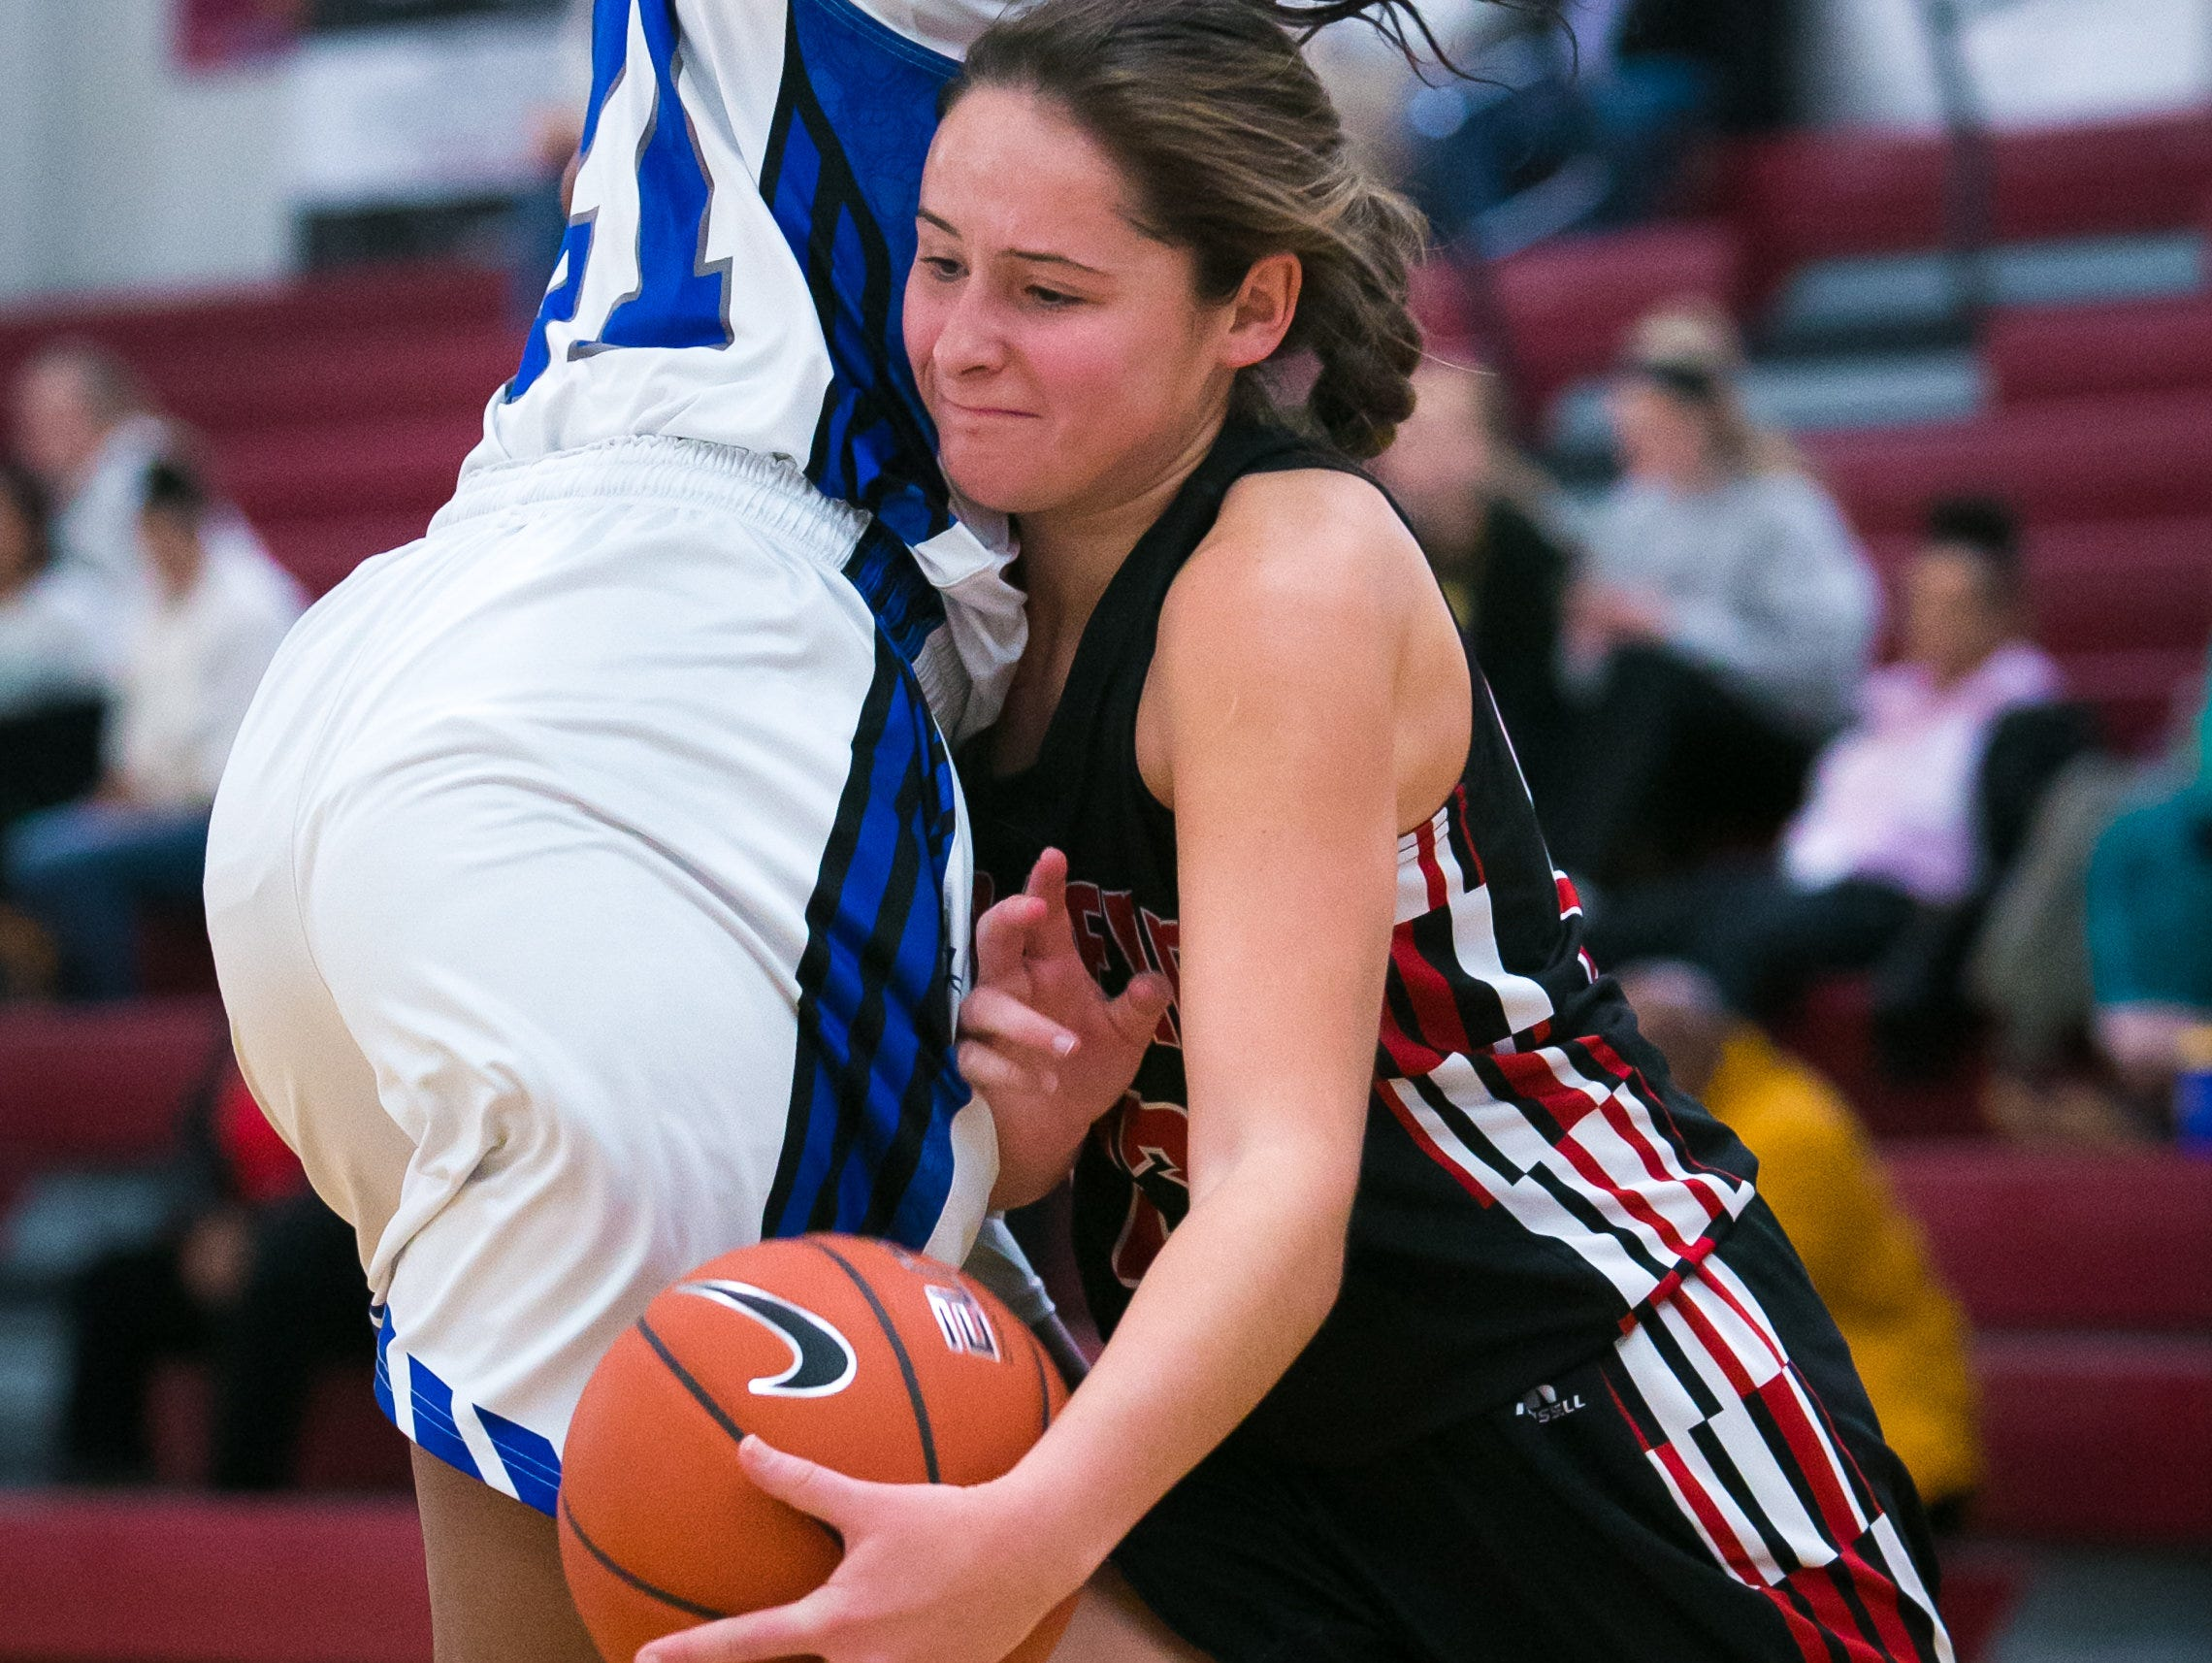 William Penn forward Jessica Behomar (right) makes contact with Howard center Kayla Rouse as she drives to the basket.